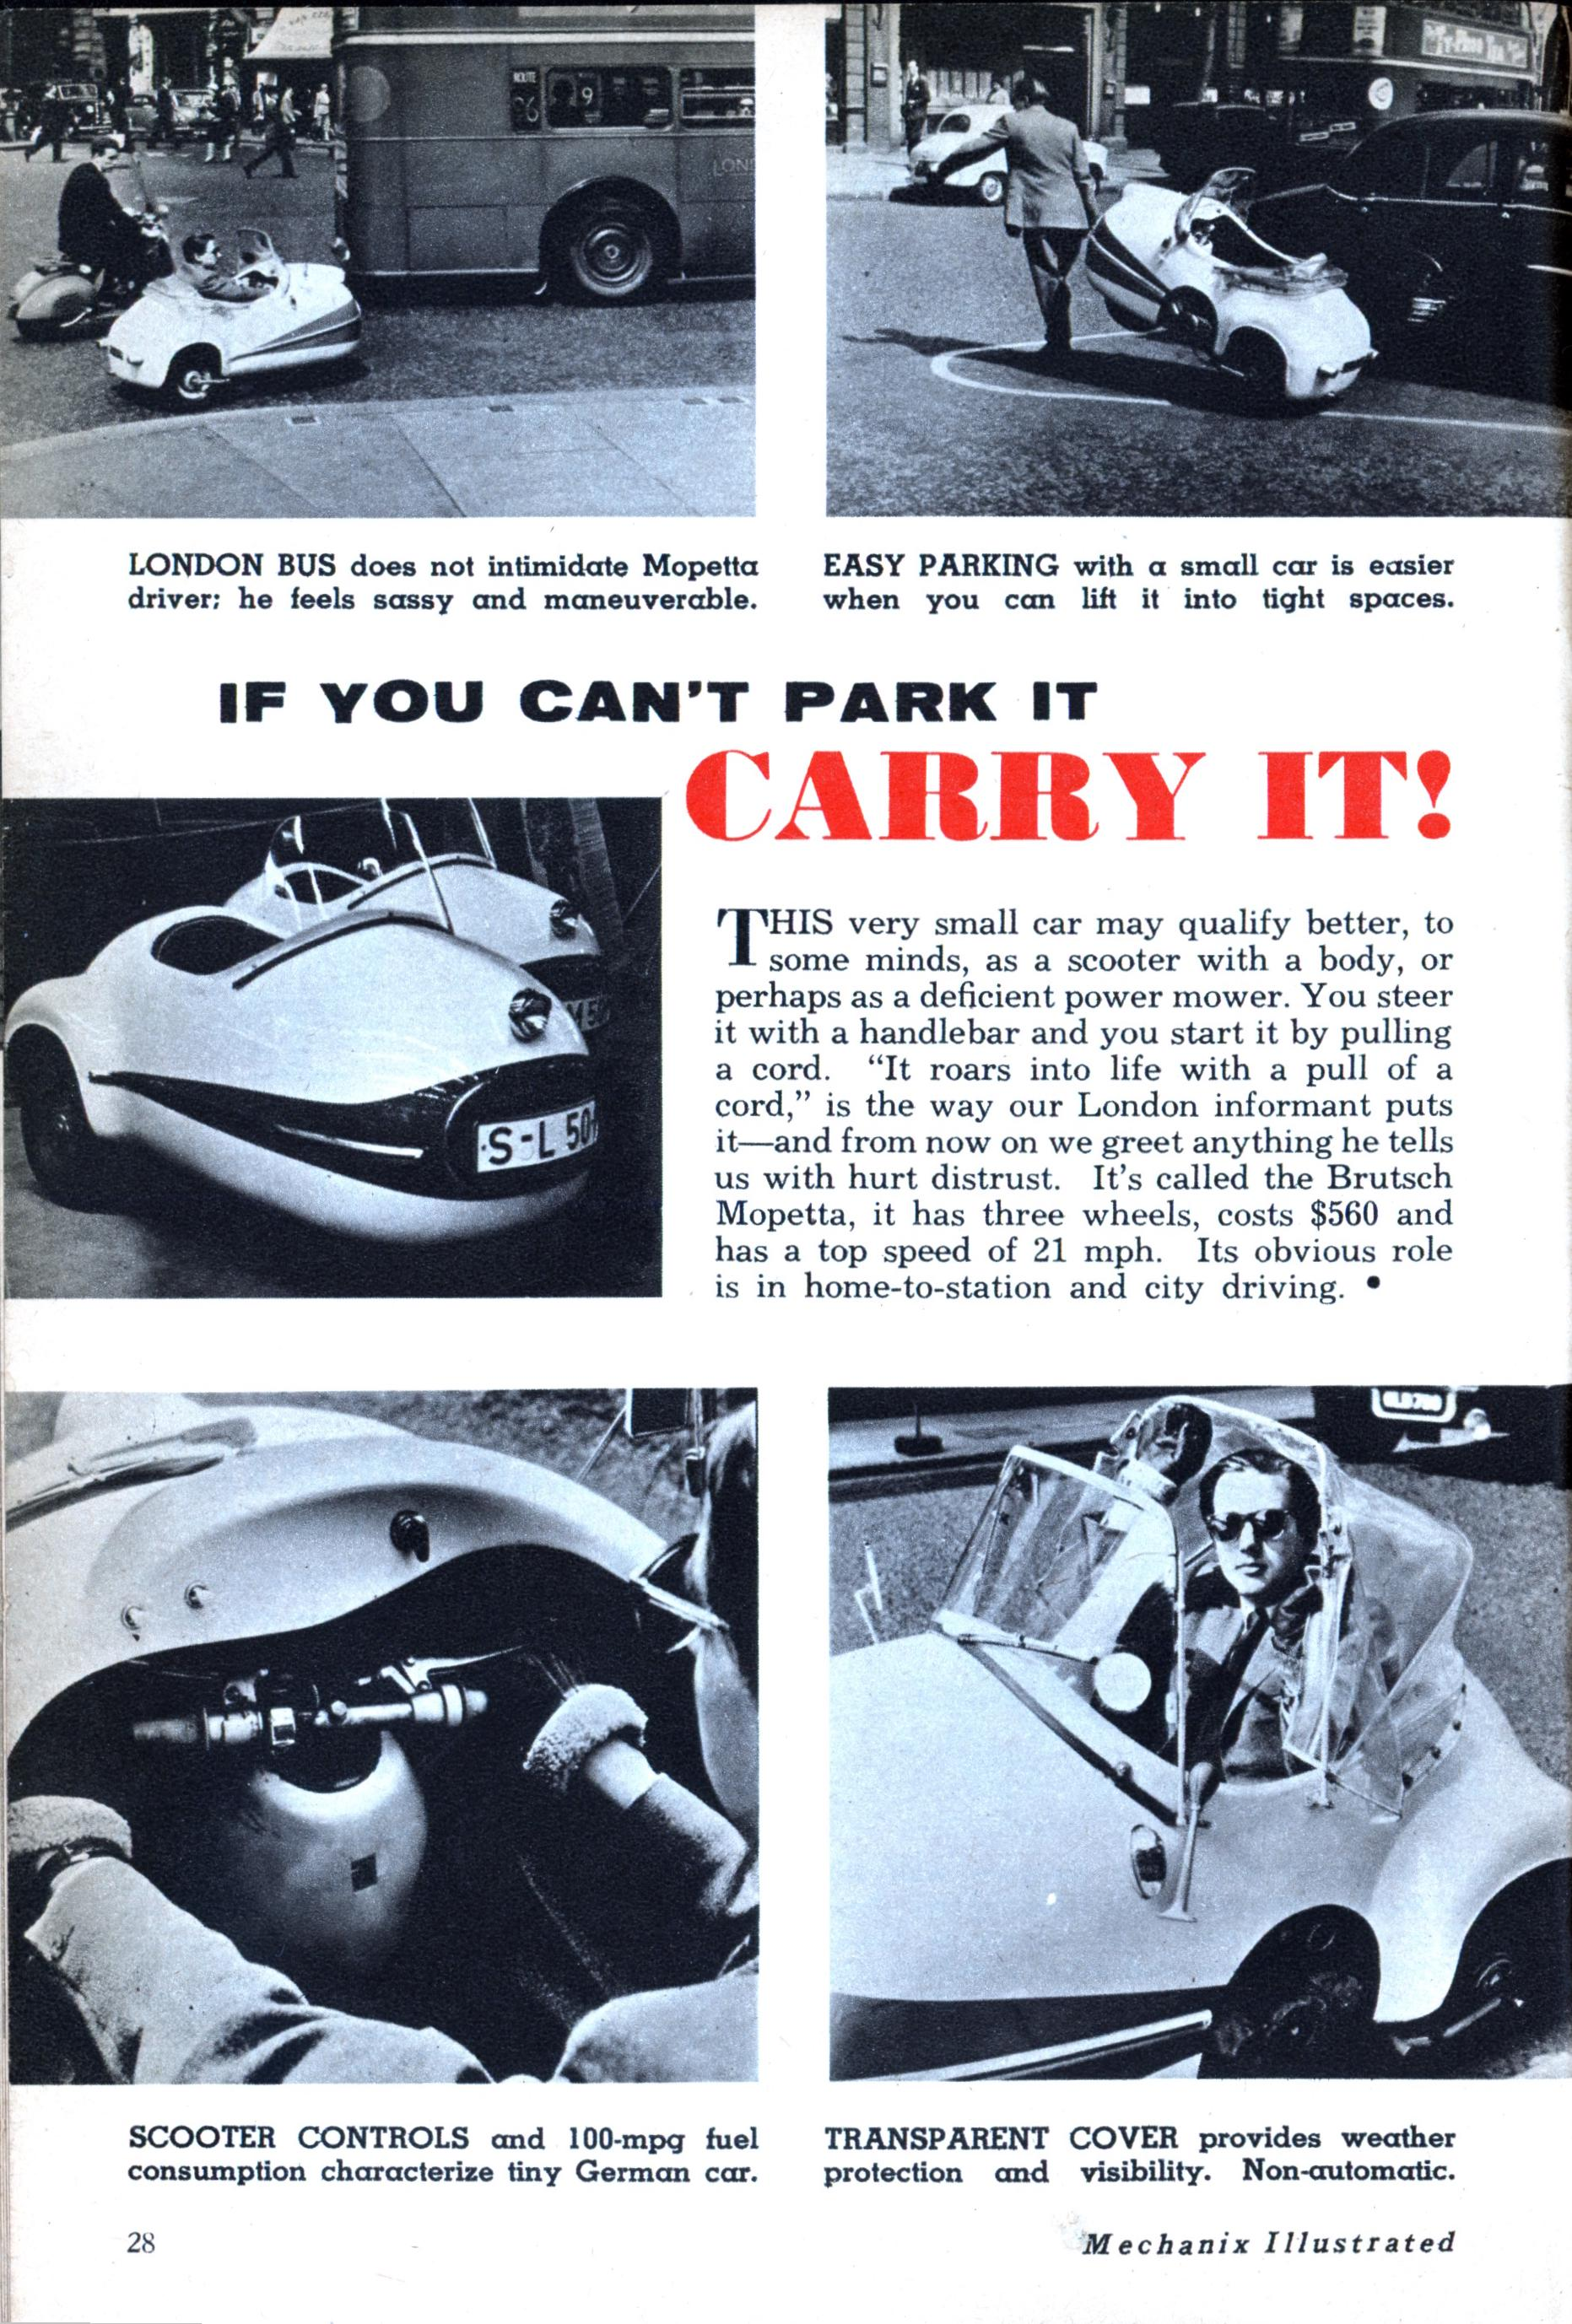 http://blog.modernmechanix.com/mags/MechanixIllustrated/7-1960/carry_it.jpg